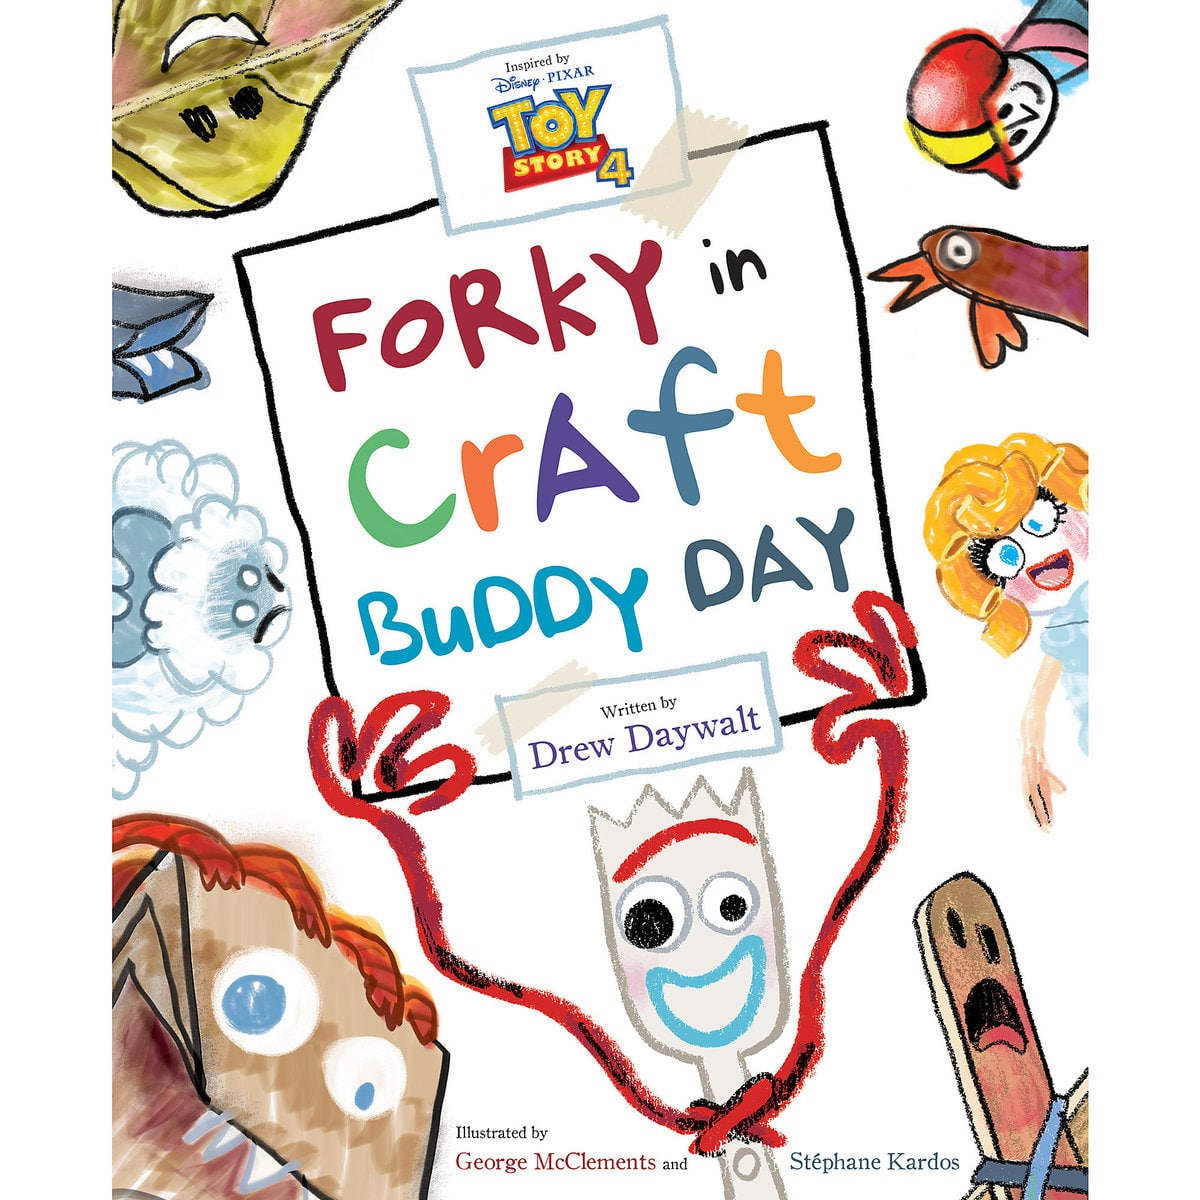 Toy Story 4: Forky in Craft Buddy Day Picture Book